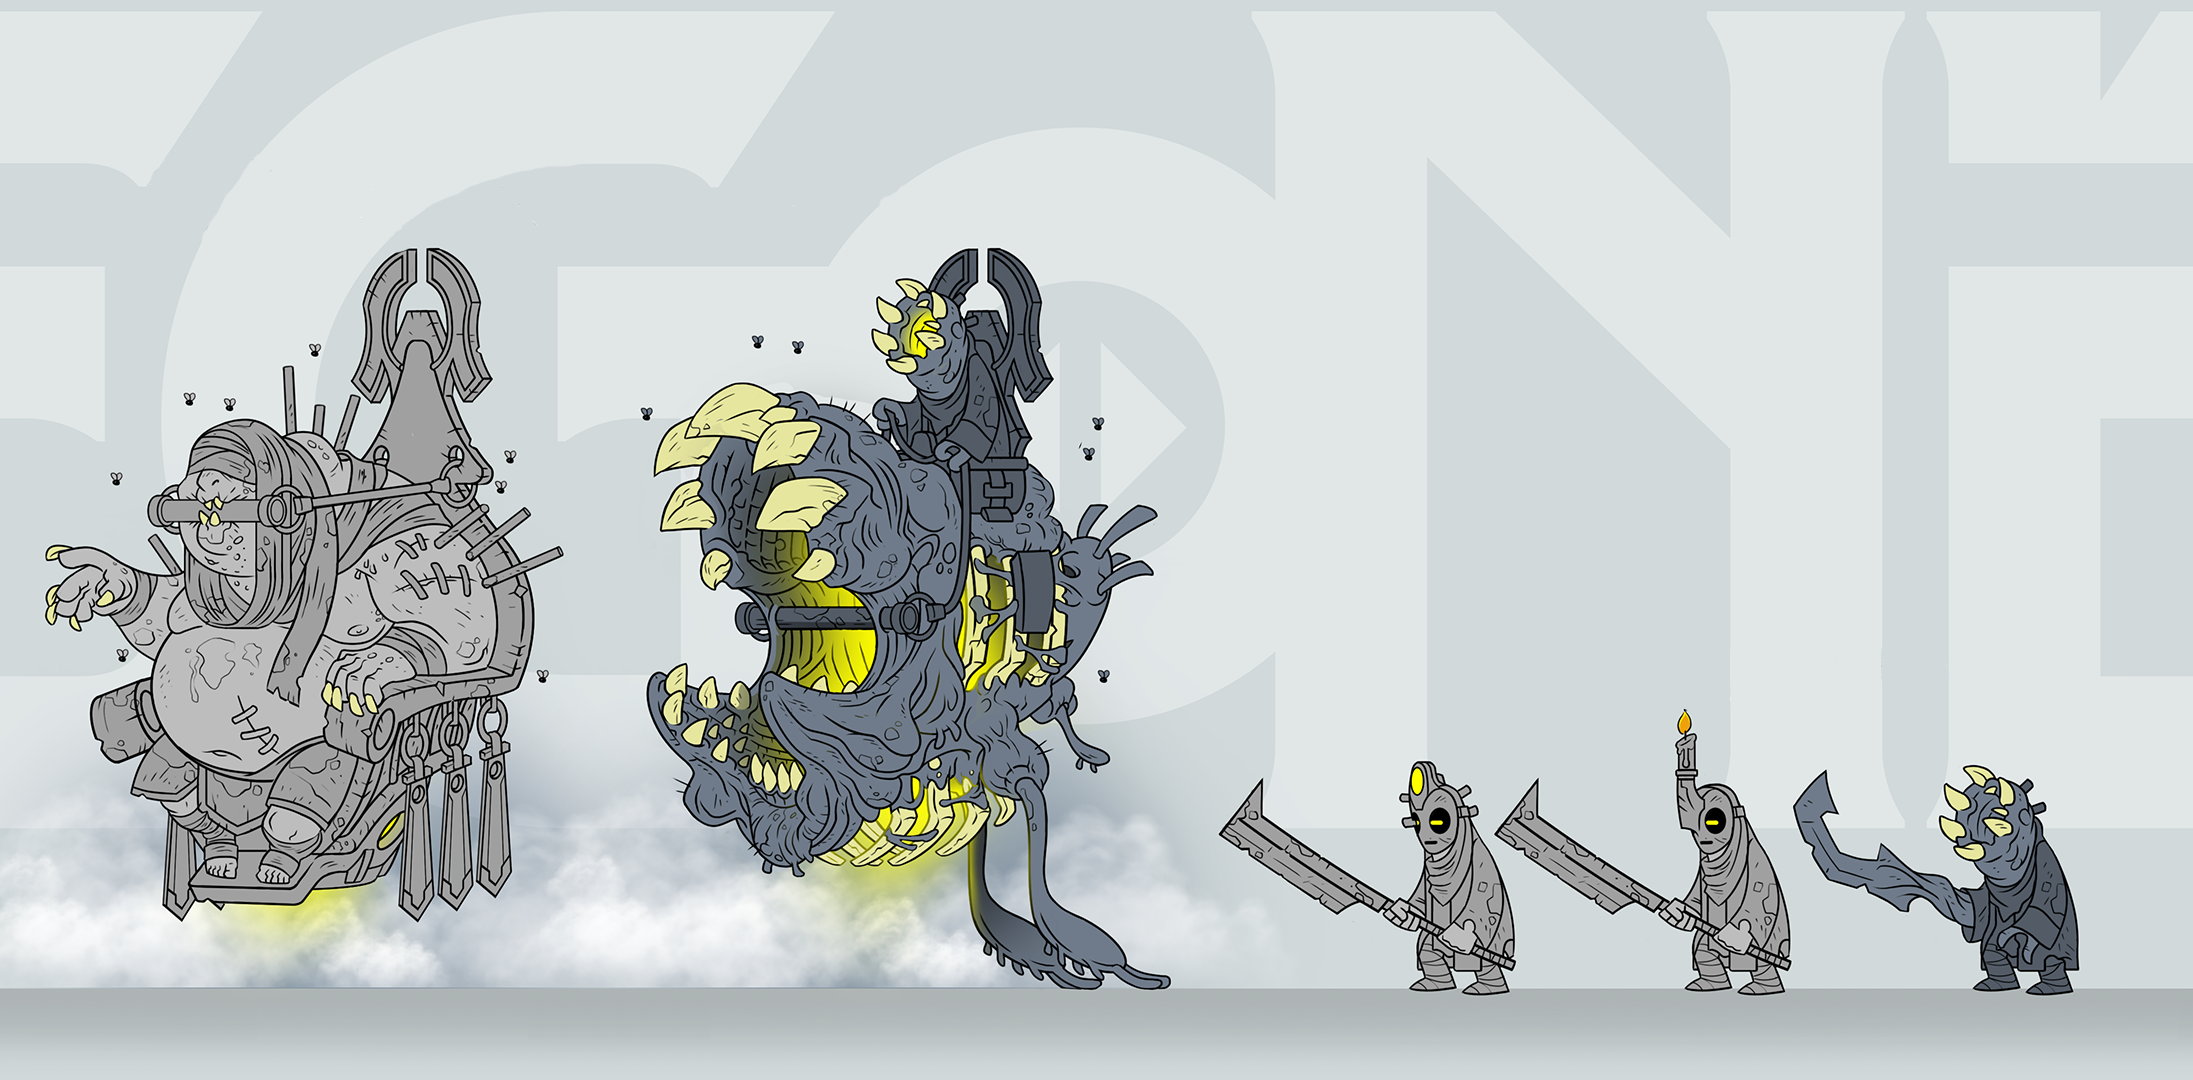 Enemy Concept for an enemy internally referred to as the Baron + some of his lil henchmen